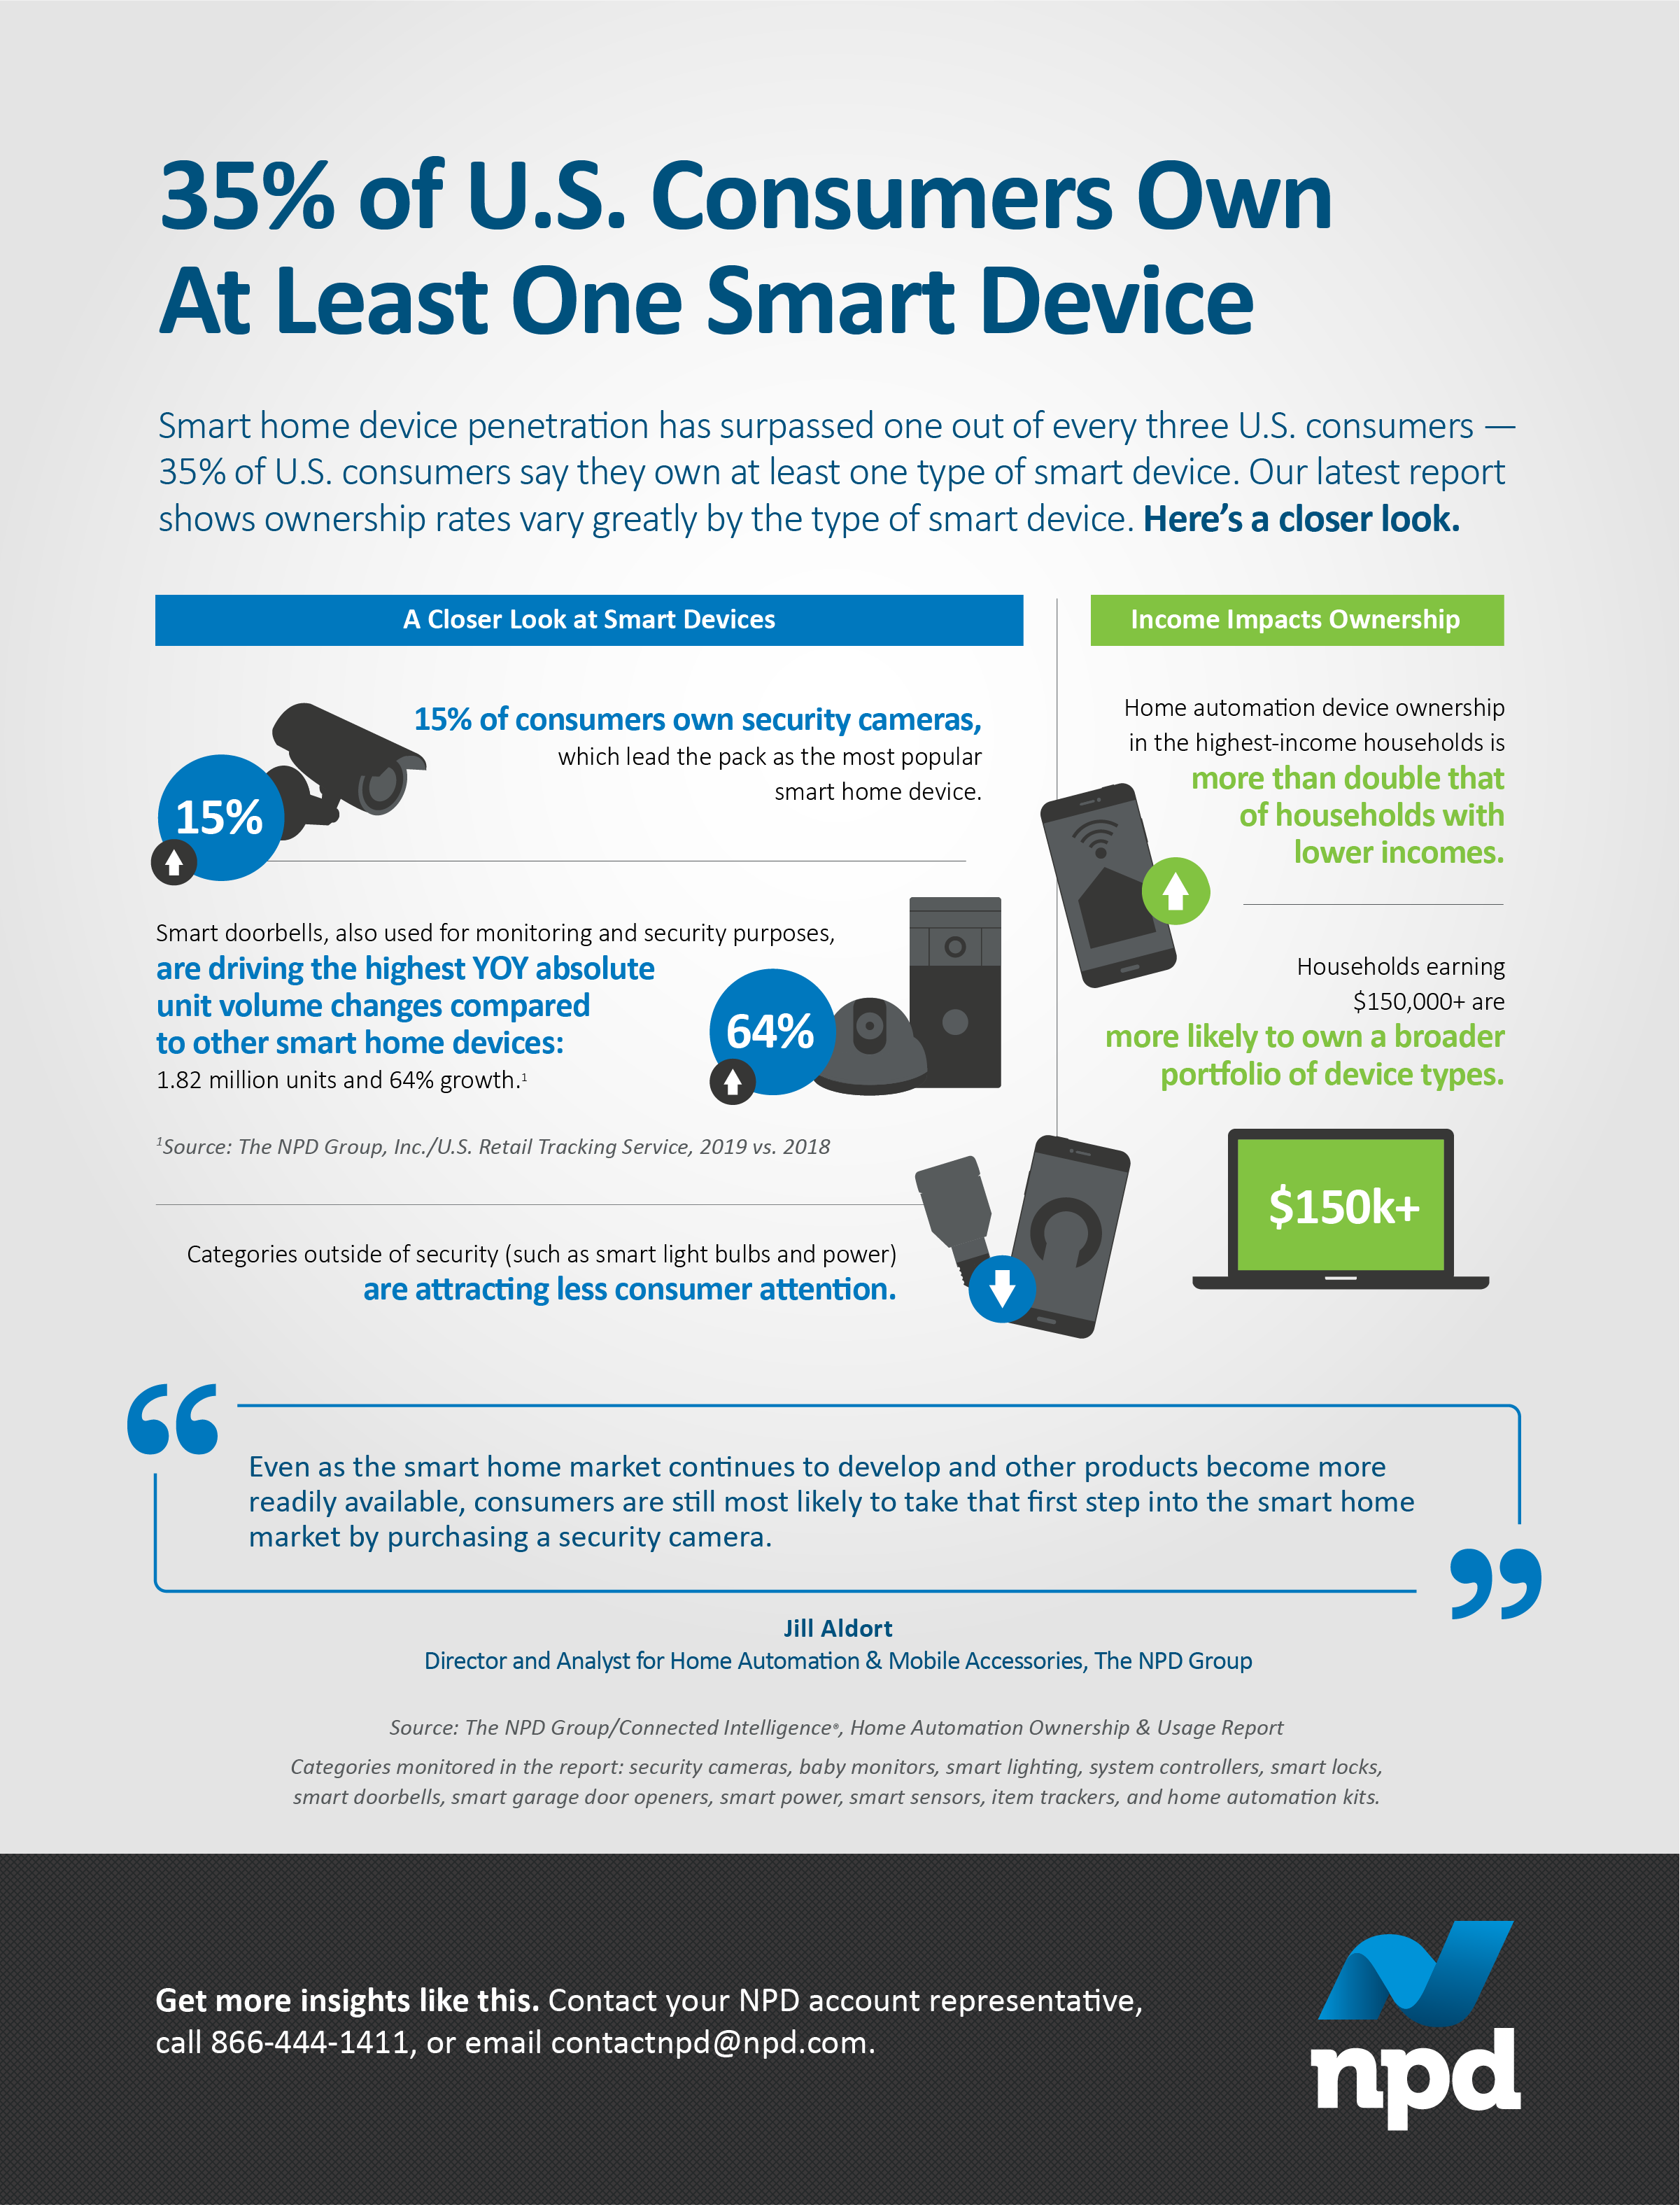 Smart home device penetration has surpassed one out of every three U.S. consumers — 35% of U.S. consumers say they own at least one type of smart device.